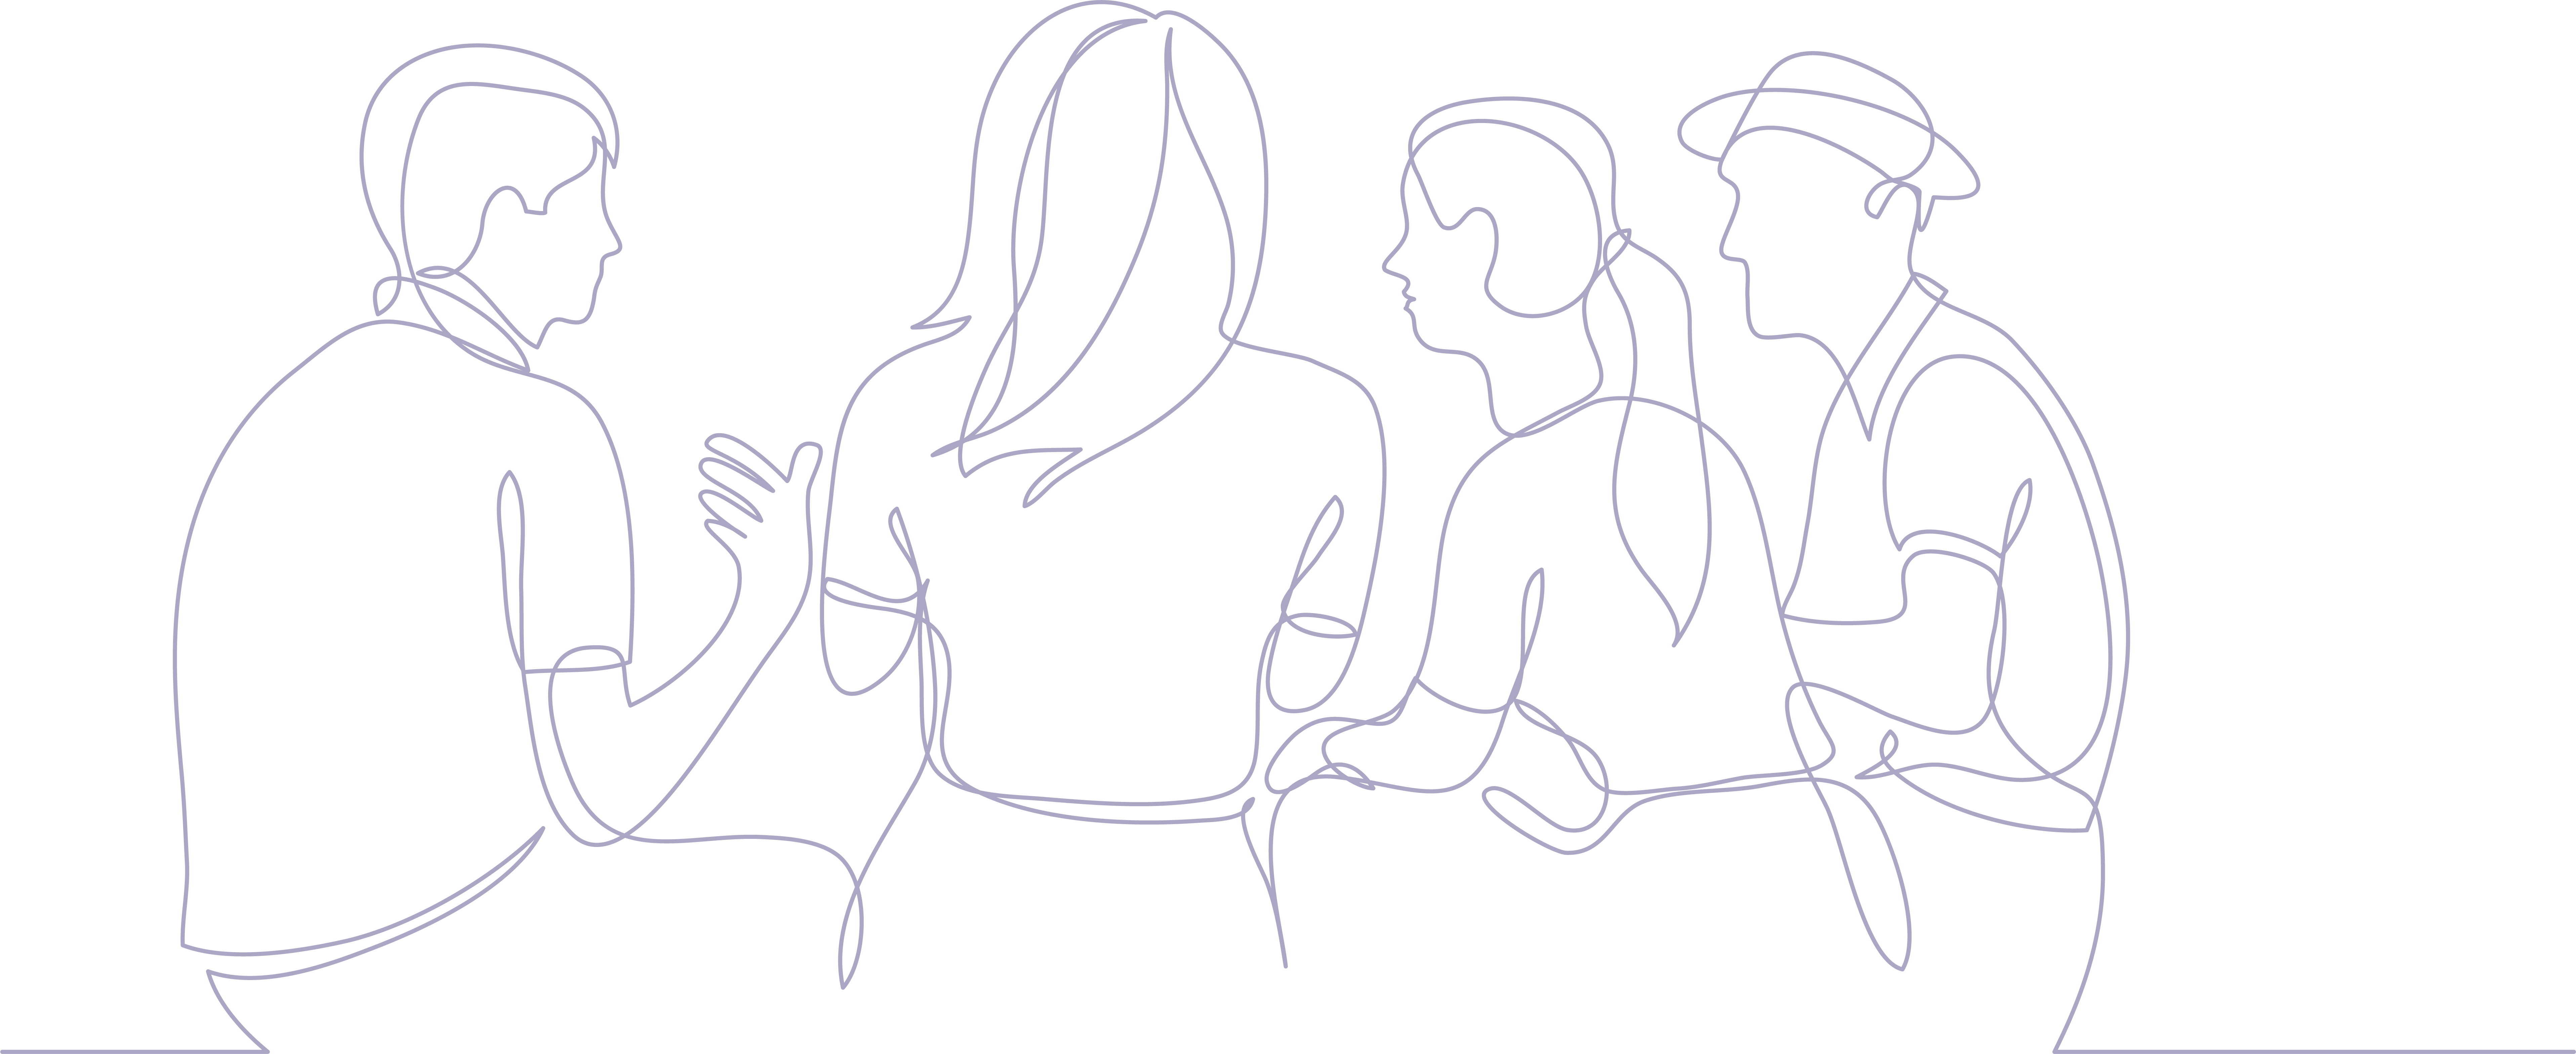 Illustration of friends telling stories